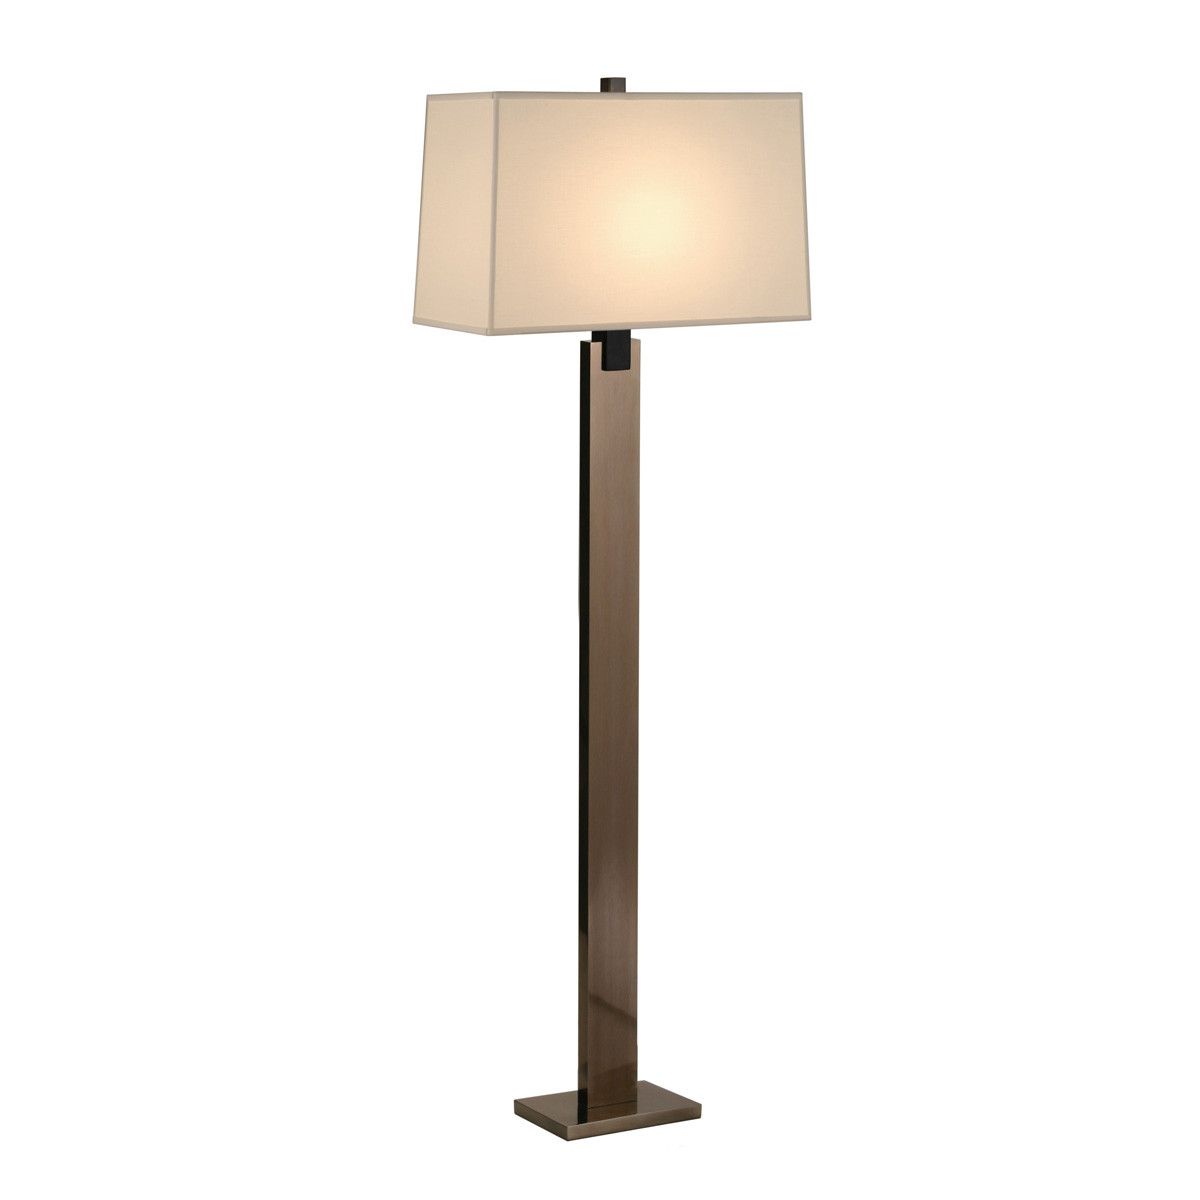 torchiere floor lamps photo - 6